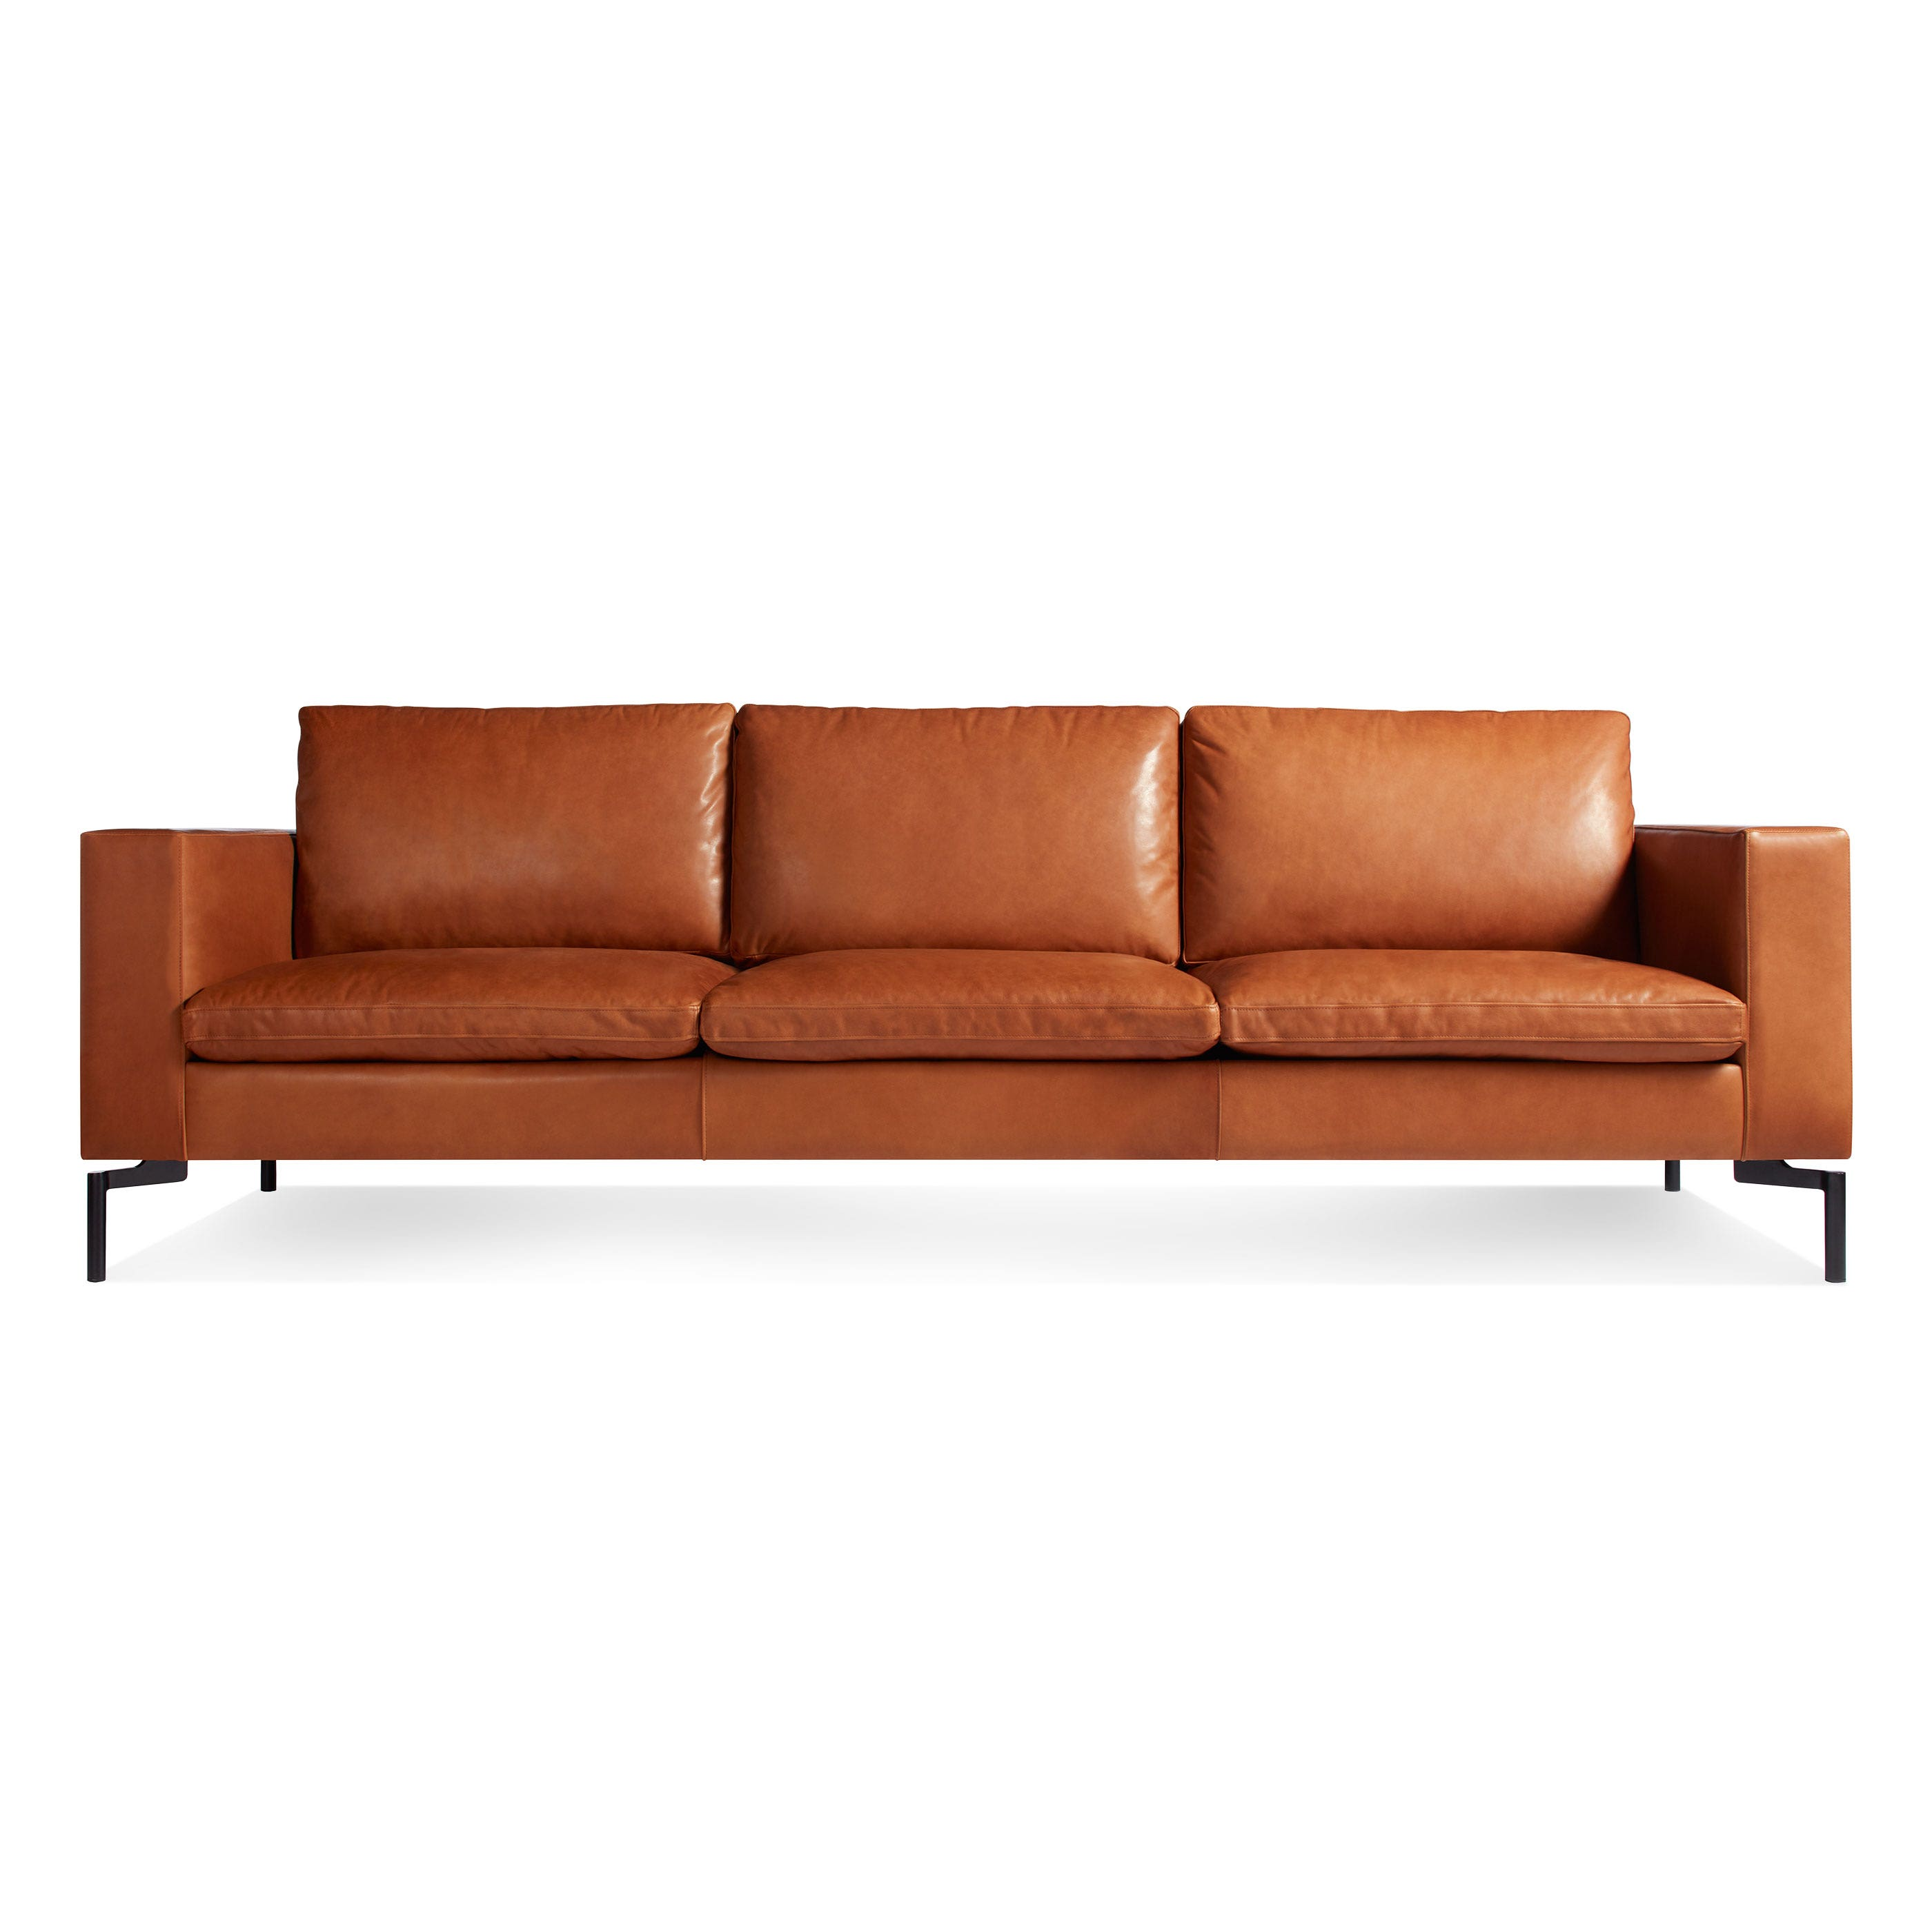 New Standard 92 Inch Leather Sofa - Modern Sofas and Sectionals ...